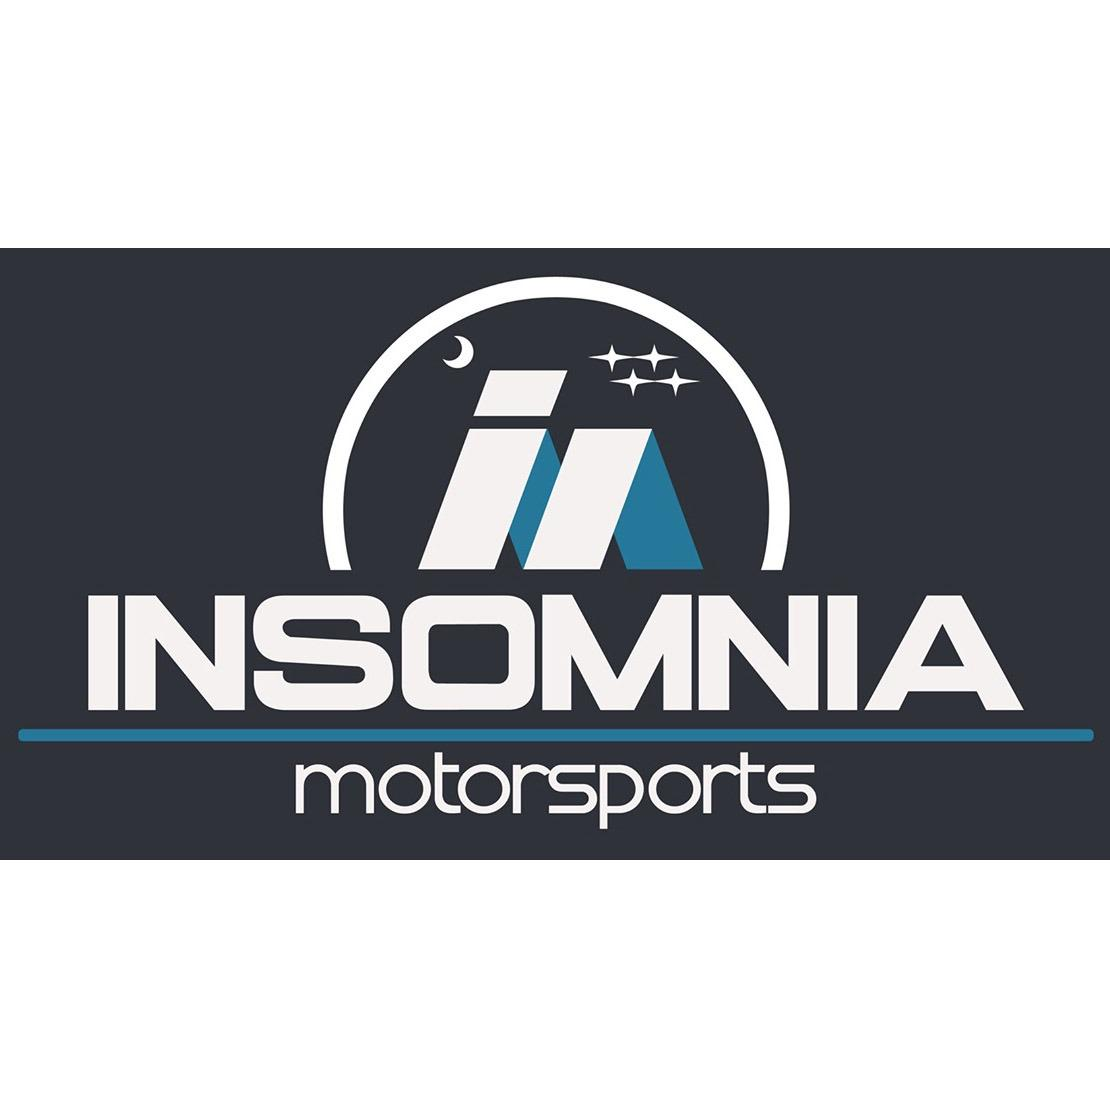 Insomnia Motorsports - Cary, NC - General Auto Repair & Service